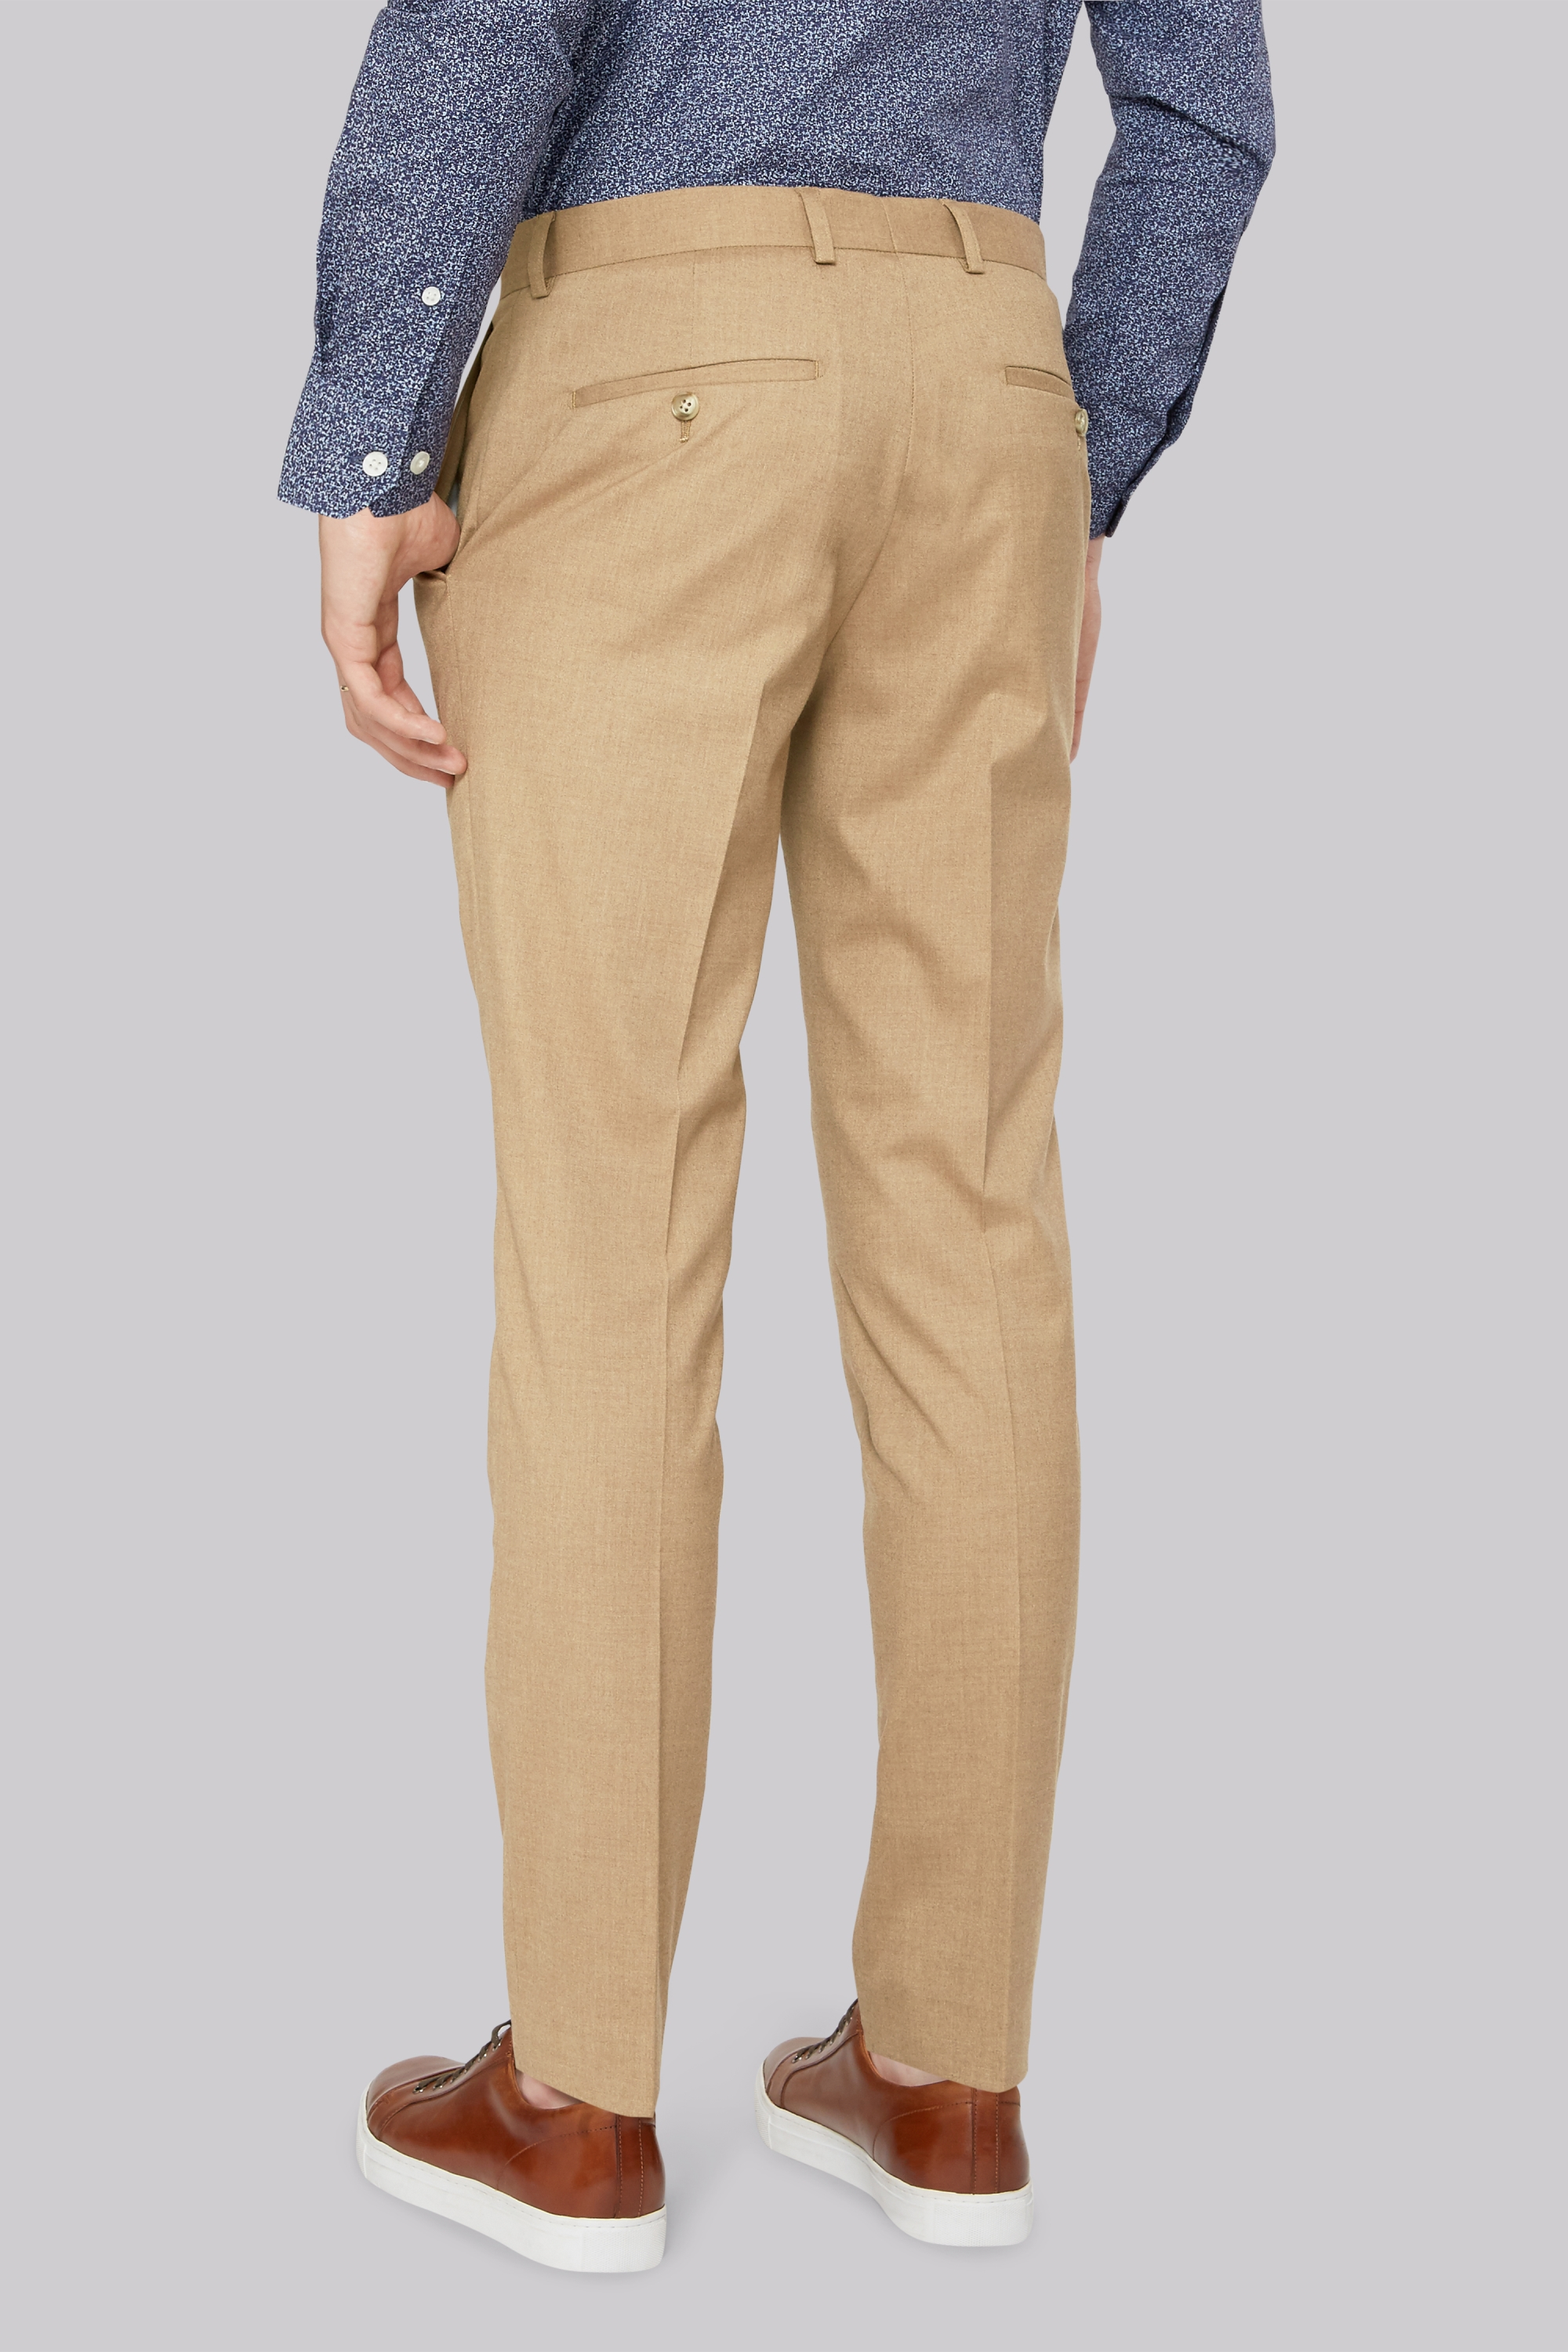 Ann Taylor has the perfect pants for every fit. Discover our modern, curvy or signature fits in dress pants, suit pants, ankle pants, wide leg pants and more.